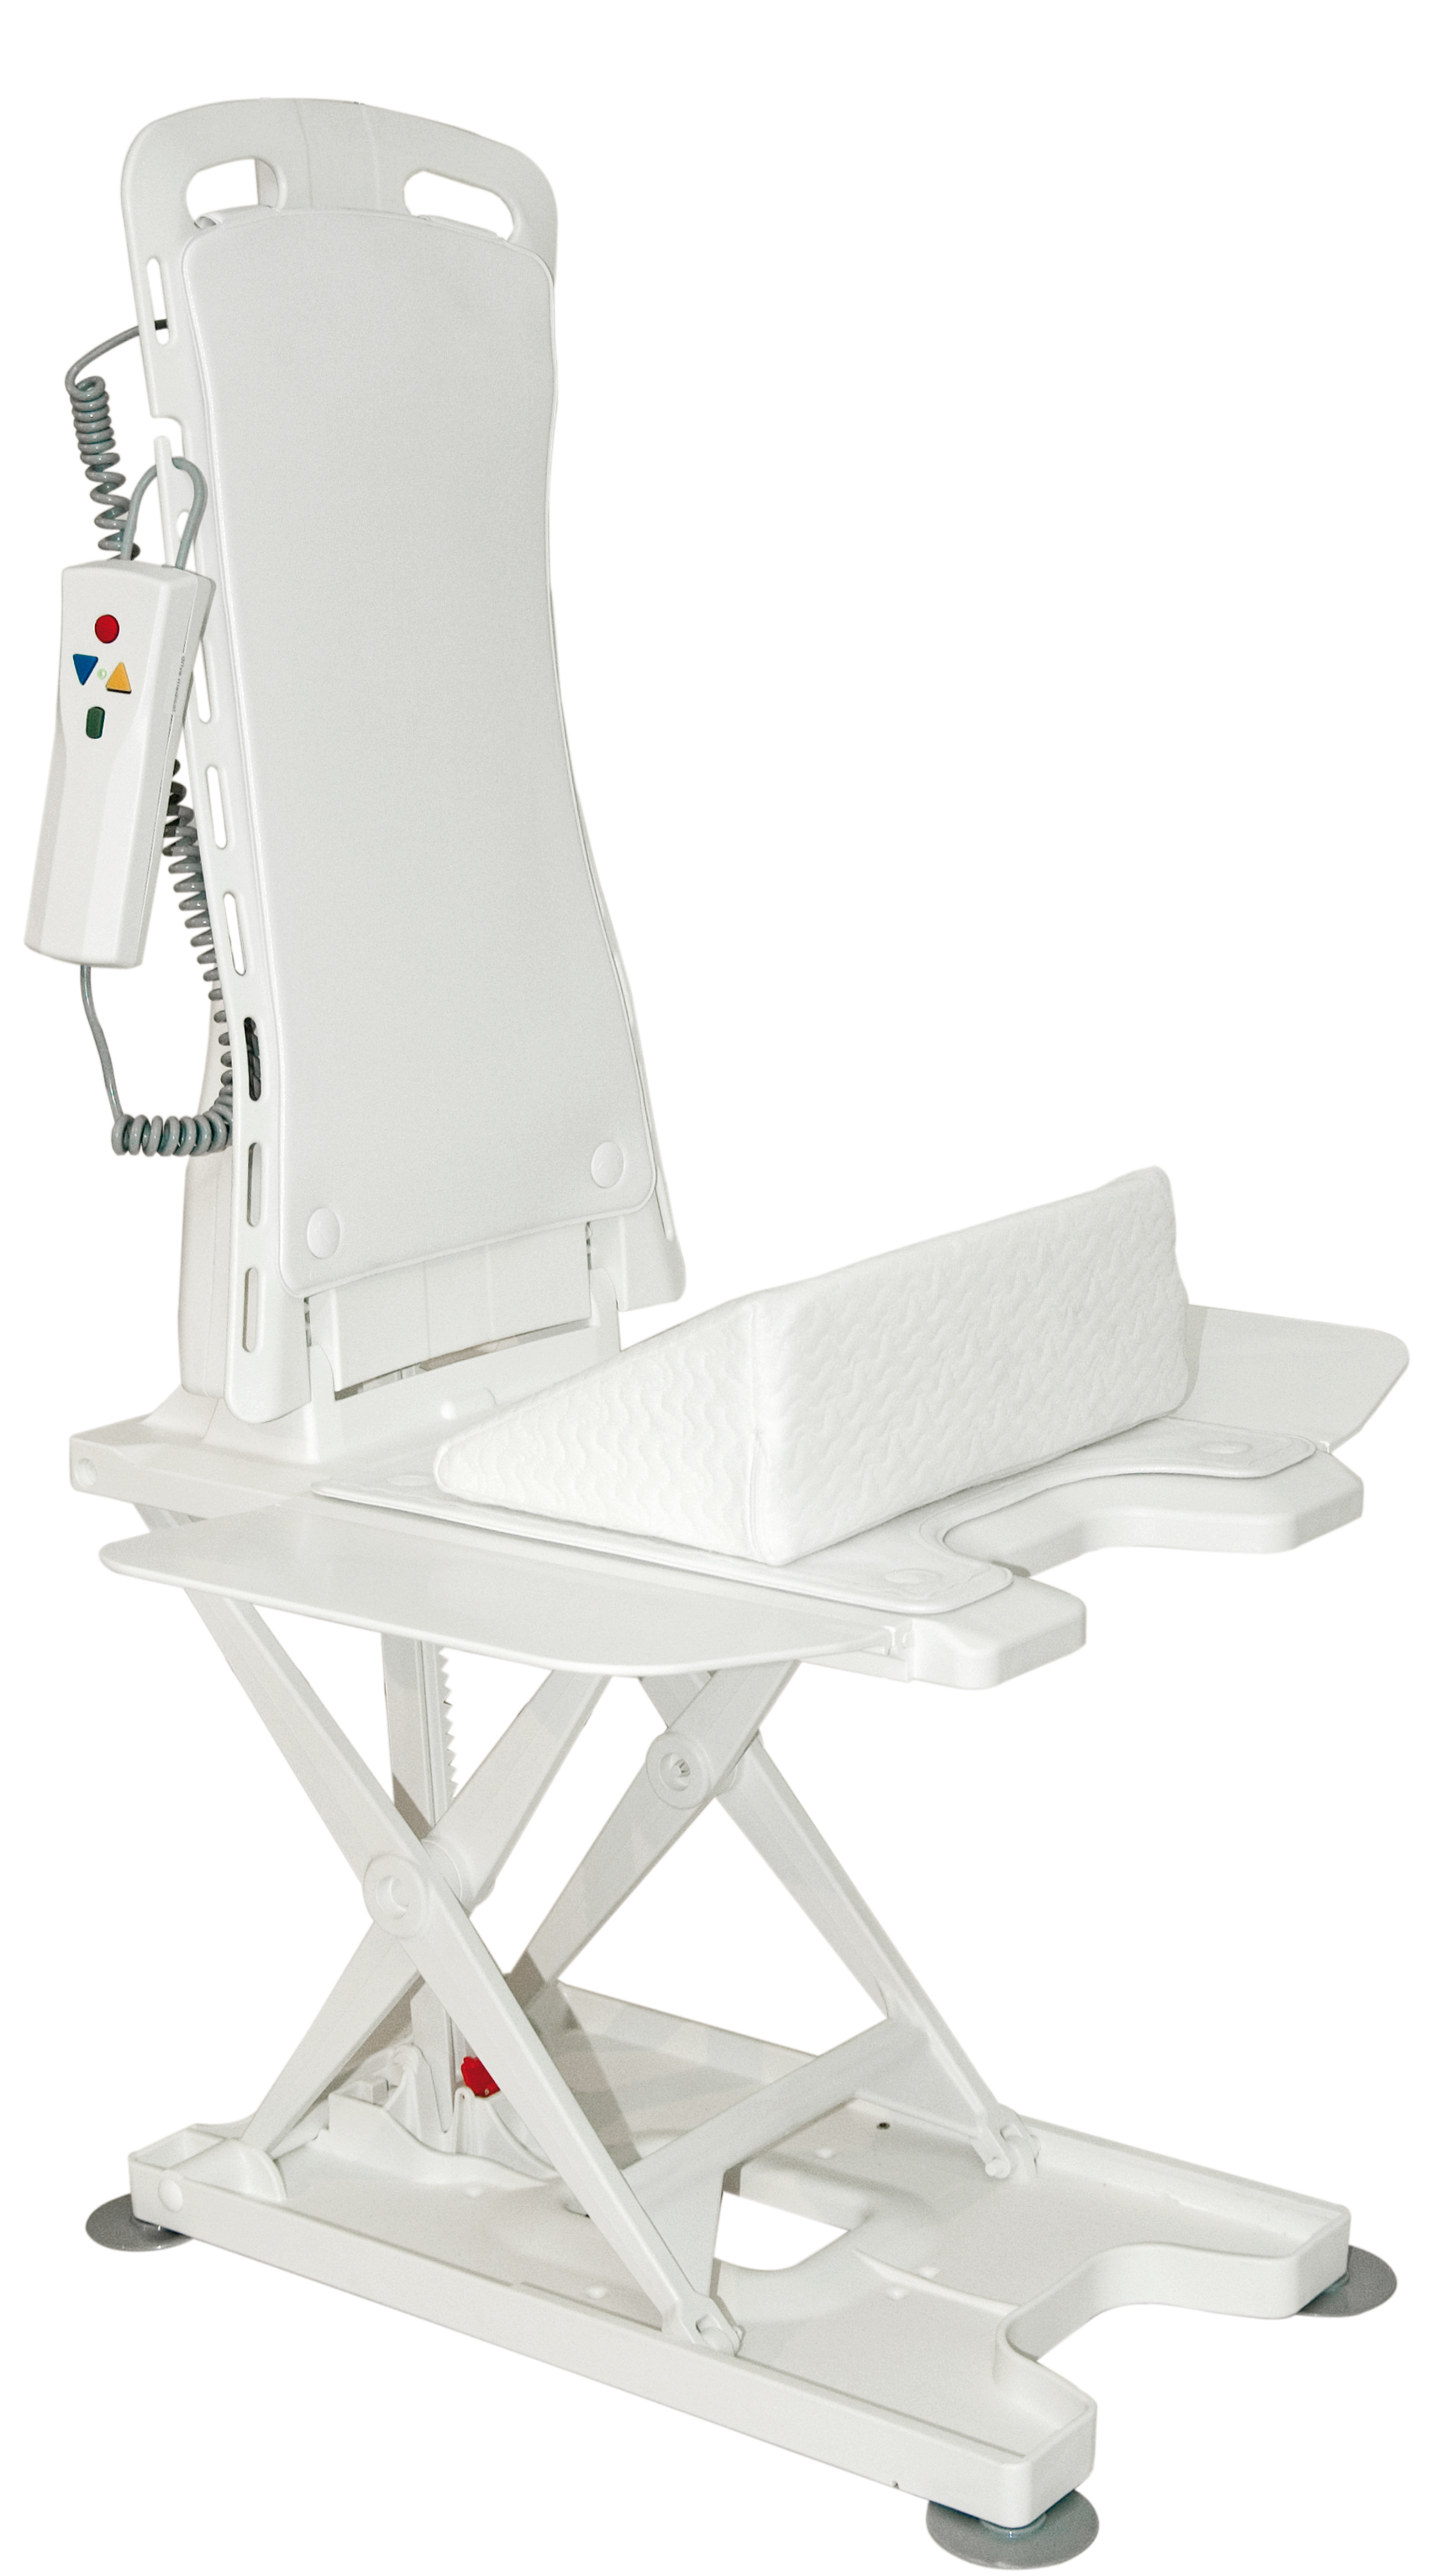 Drive Bellavita Auto Bath Tub Chair Seat Lift, Drive Medical ...